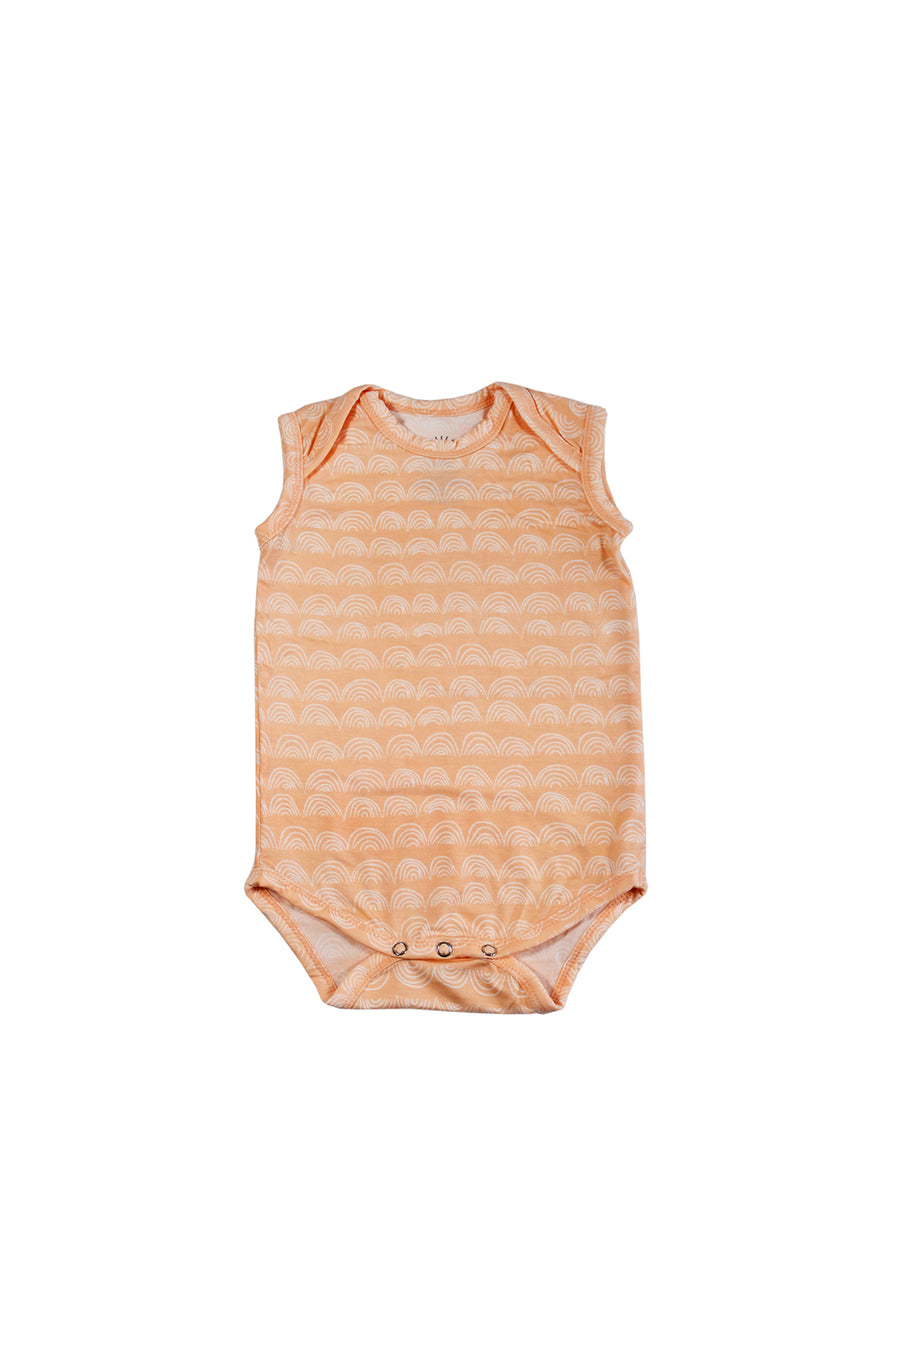 Sleeveless Onesie - Beach Sand Rainbow